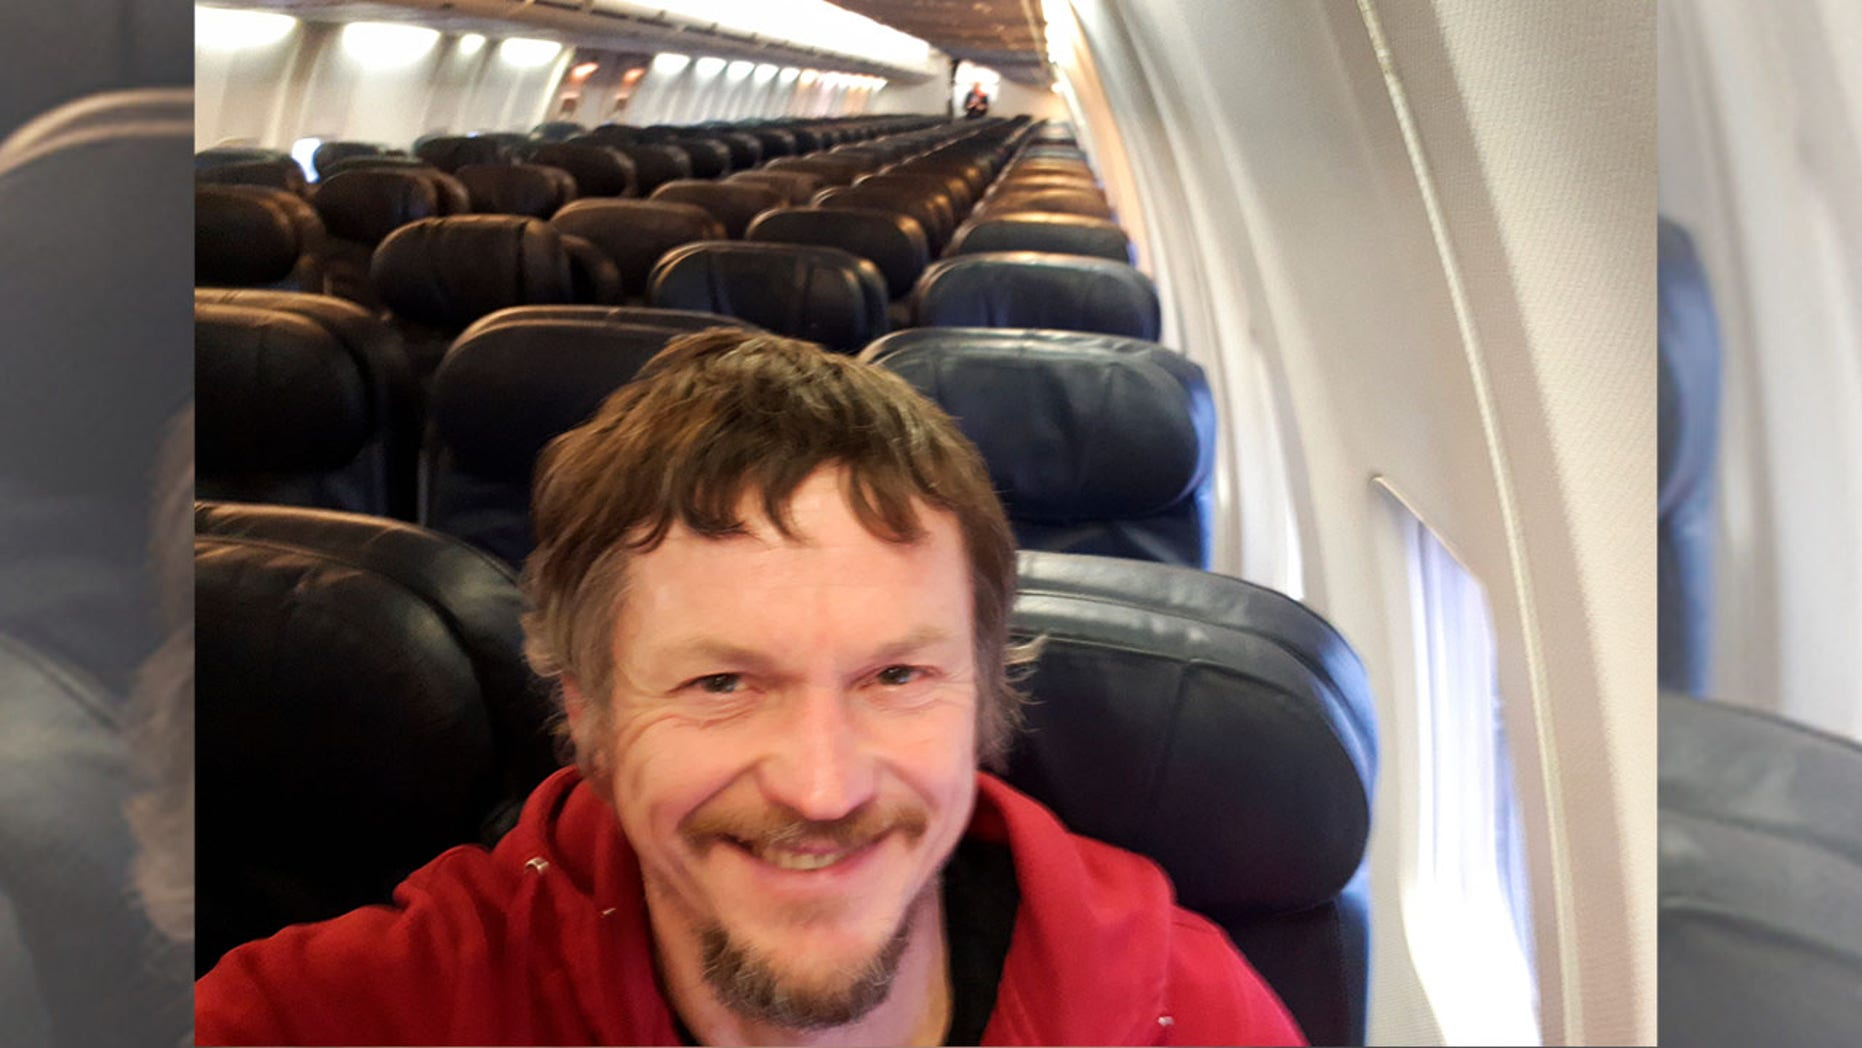 Skirmantas Strimaitis, pictured here takinga selfie, took off from Lithuania on March 16 as the only passenger aboarda Boeing 737-800 airplane.